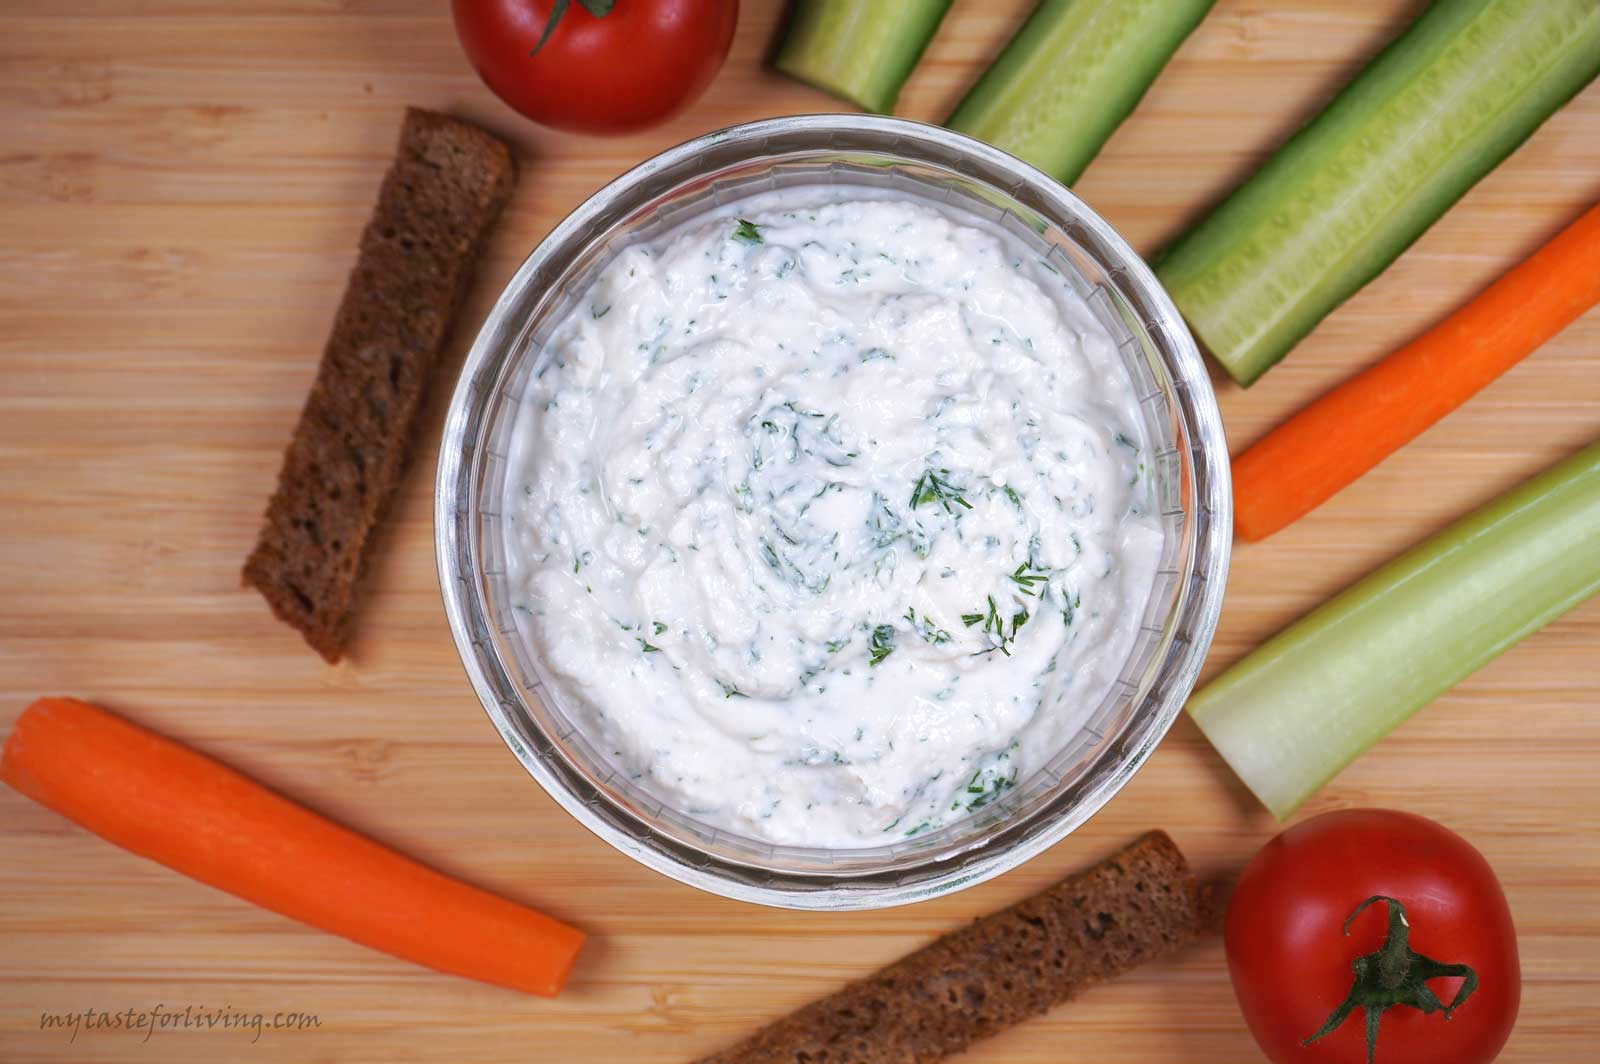 Easy and quick dip prepared with cottage cheese, garlic, dill and a yogurt. You can serve it in many ways - as an addition to a salad, as a dip served with different types of vegetables, crackers, toasted slices or bruschettas spread with it. It is prepared extremely quickly and easily.